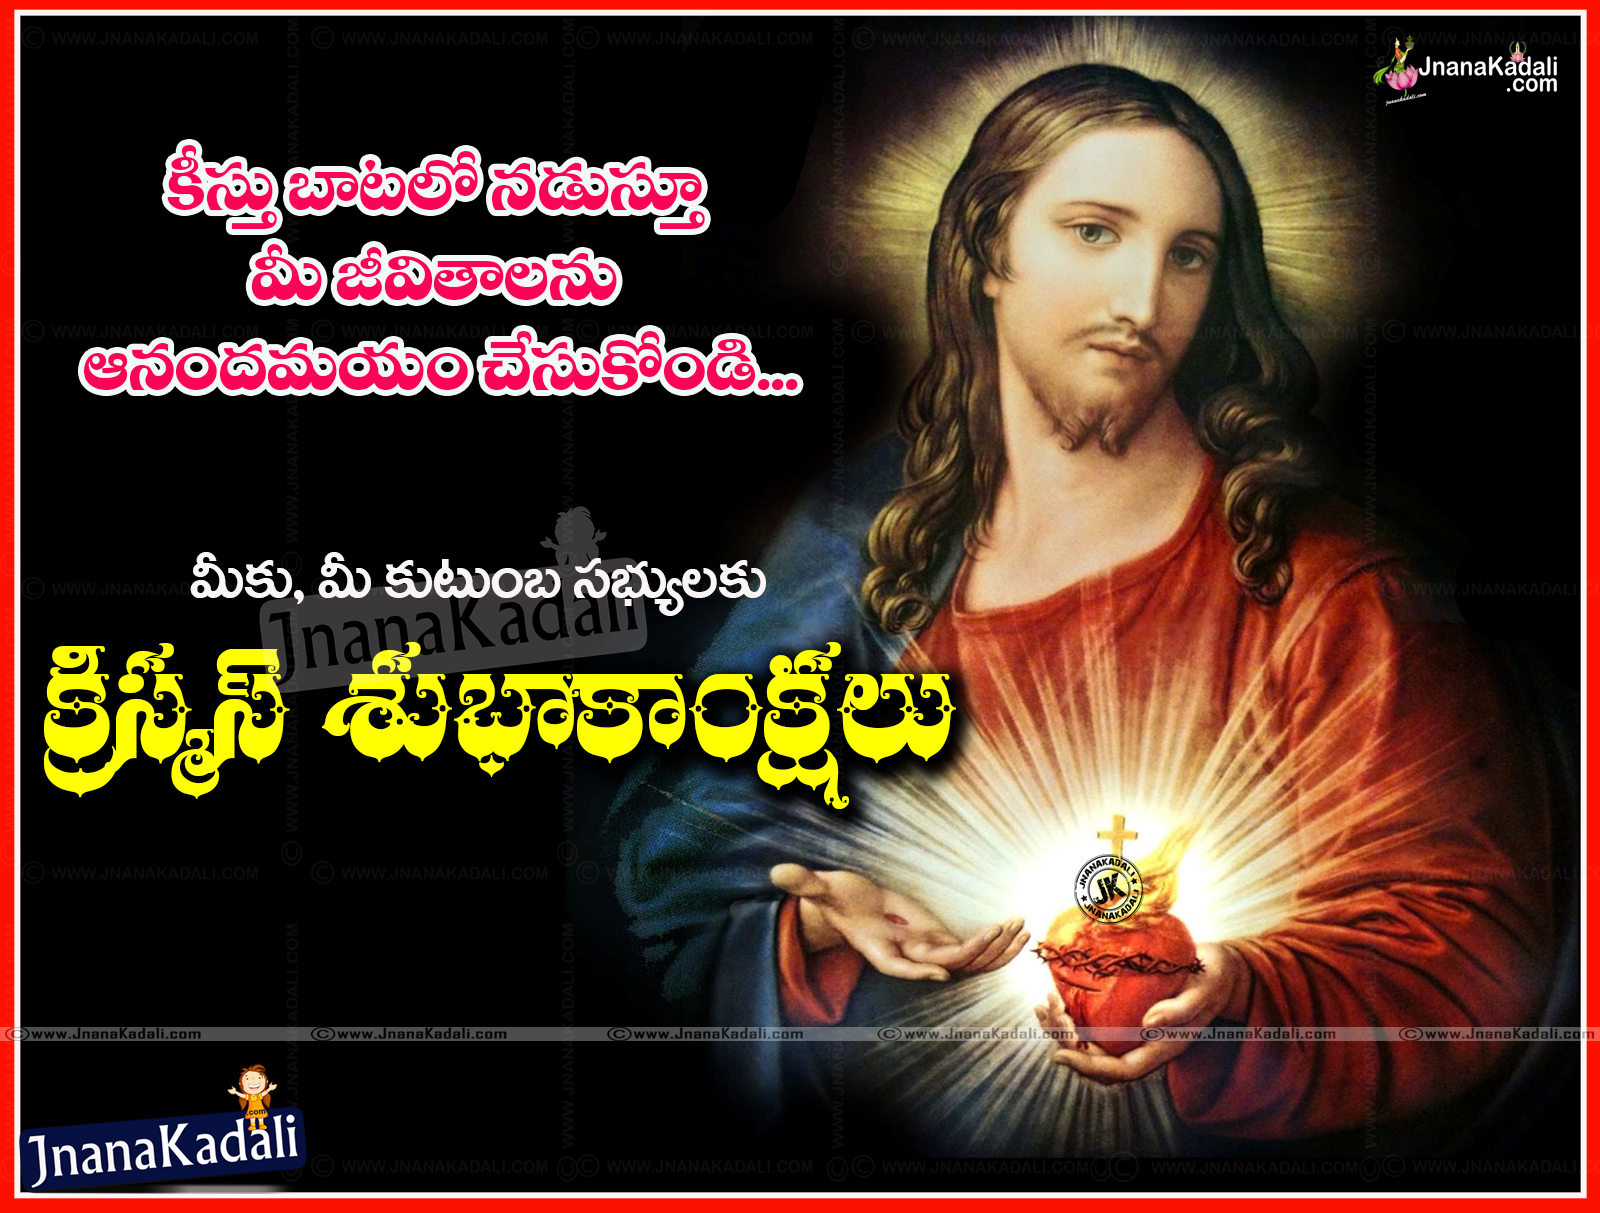 Telugu Best Christmas Greetings Quotations With Jesus Blessings Images JNAN